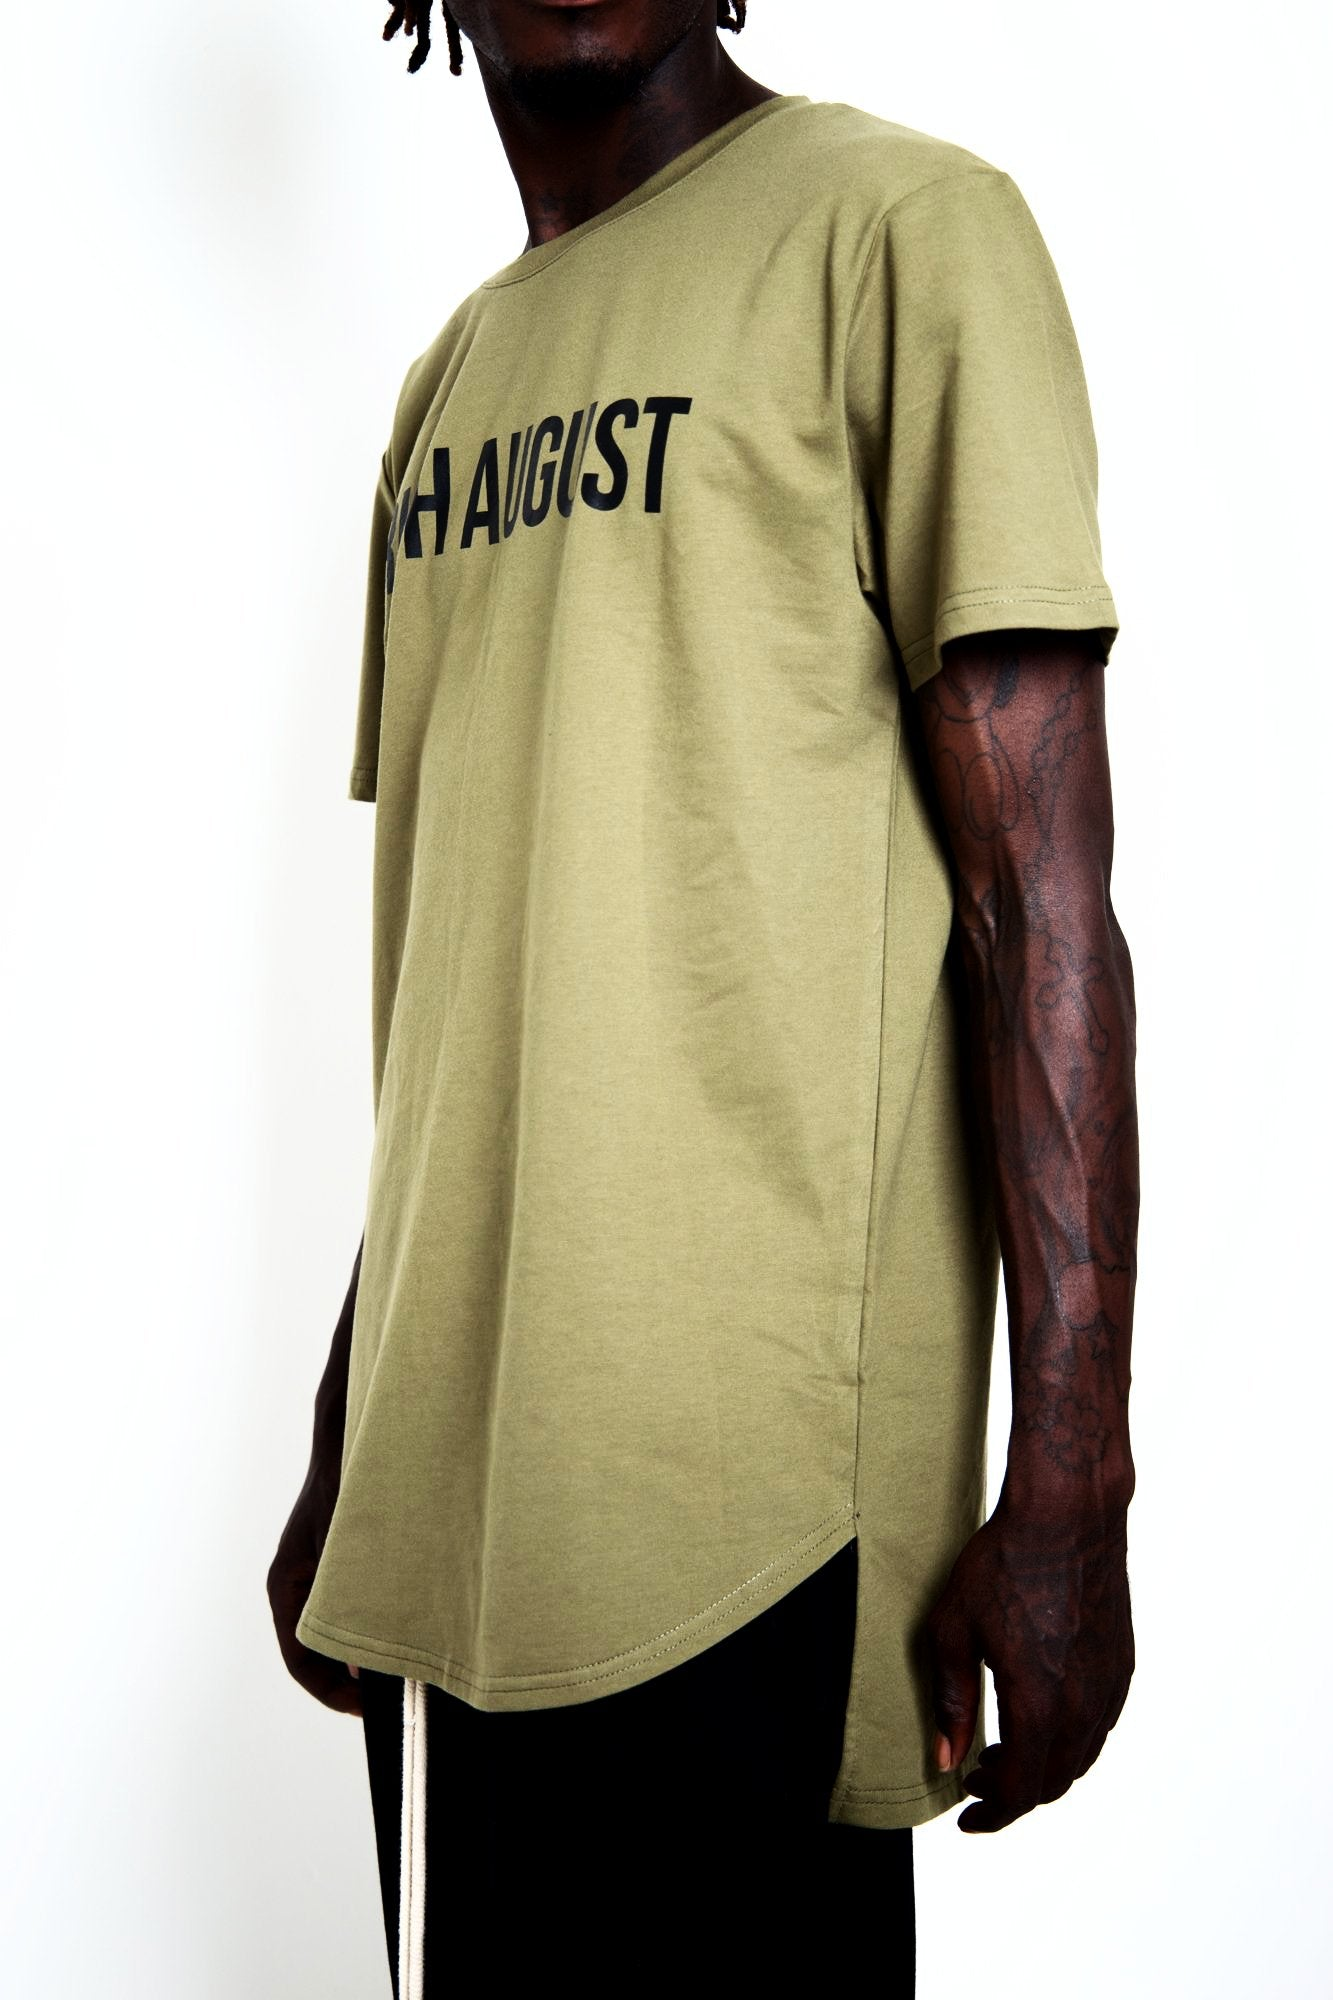 All Star August Tee - Khaki Green